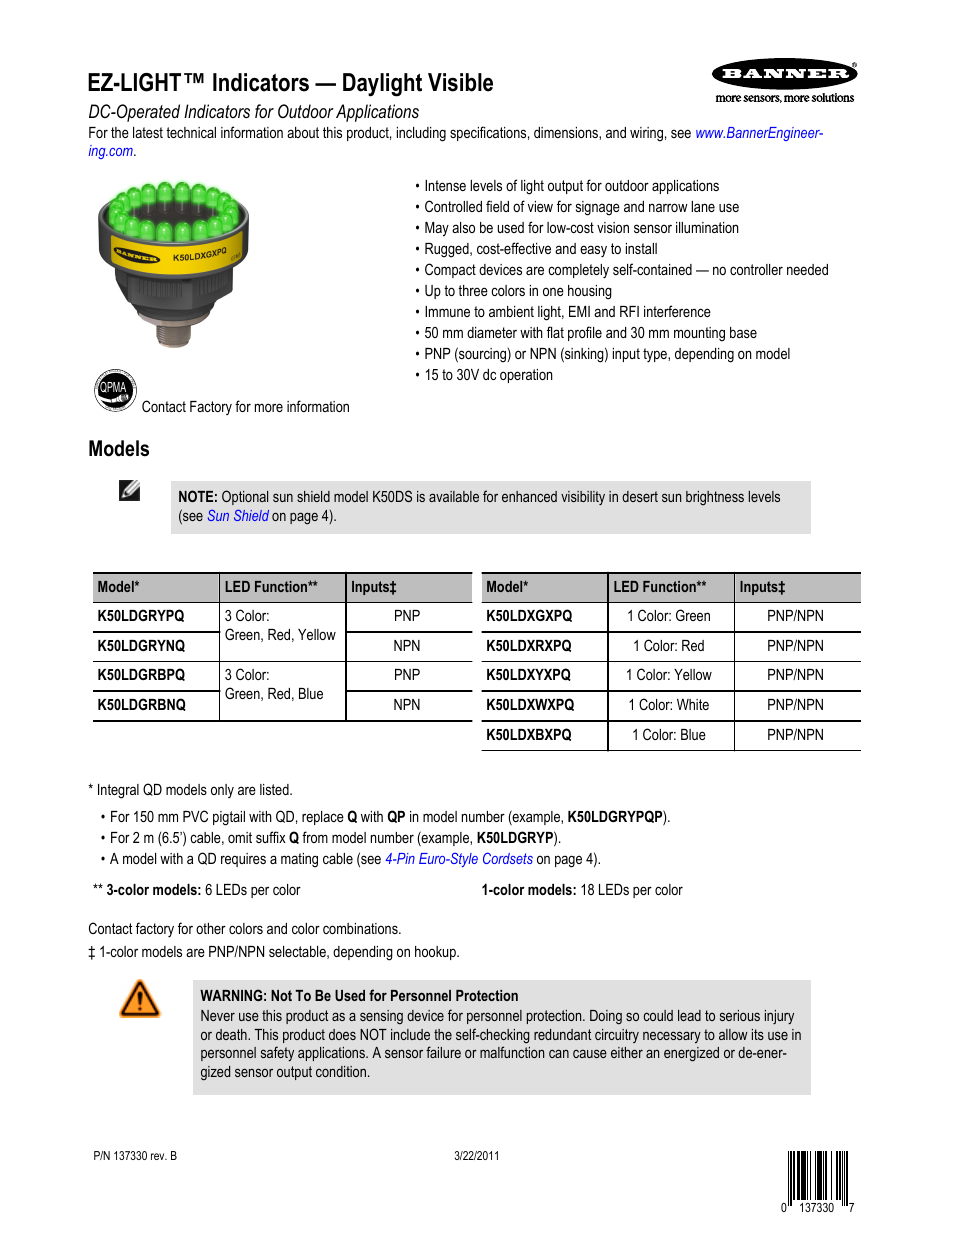 Banner K50L Independent Push Button Contact User Manual   4